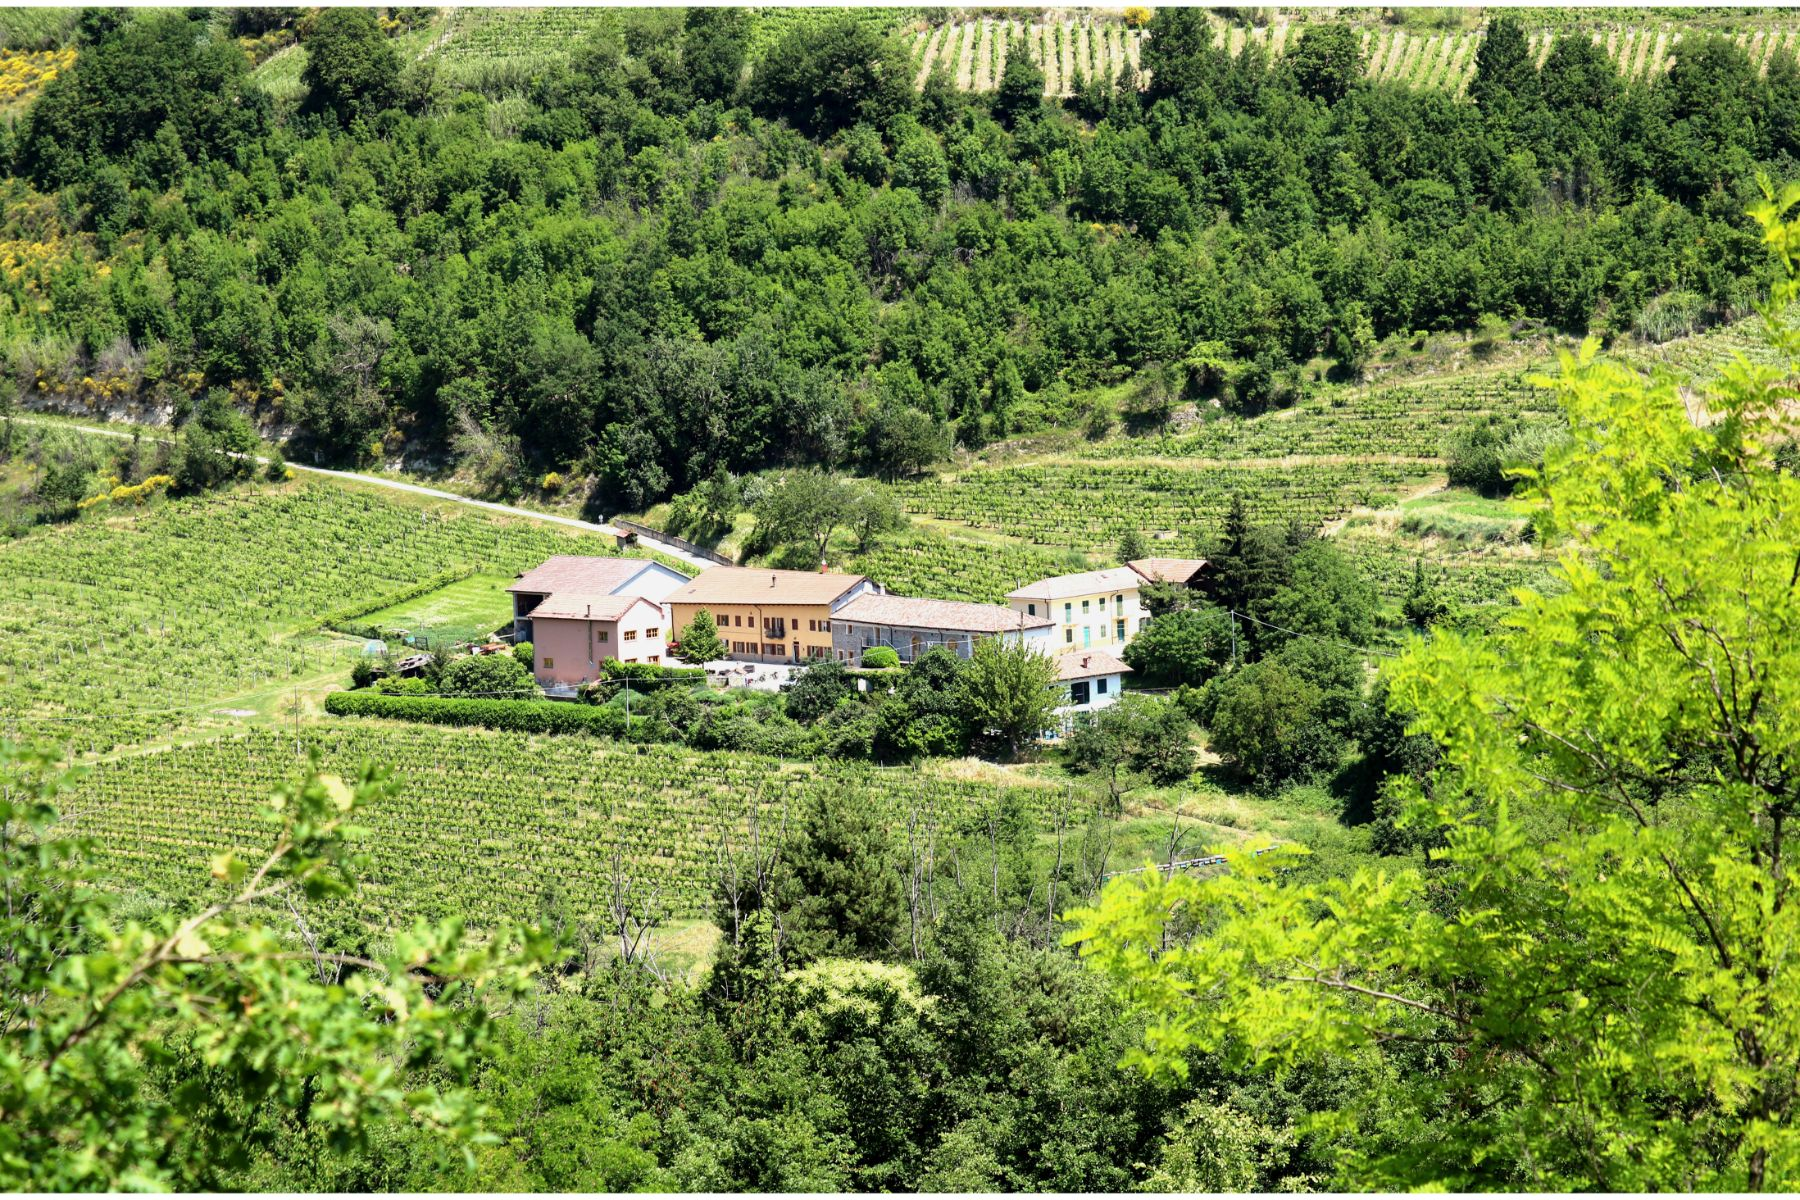 Casa Re, Piemonte - von Natur umgeben | surrounded by nature | circondato dalla natura